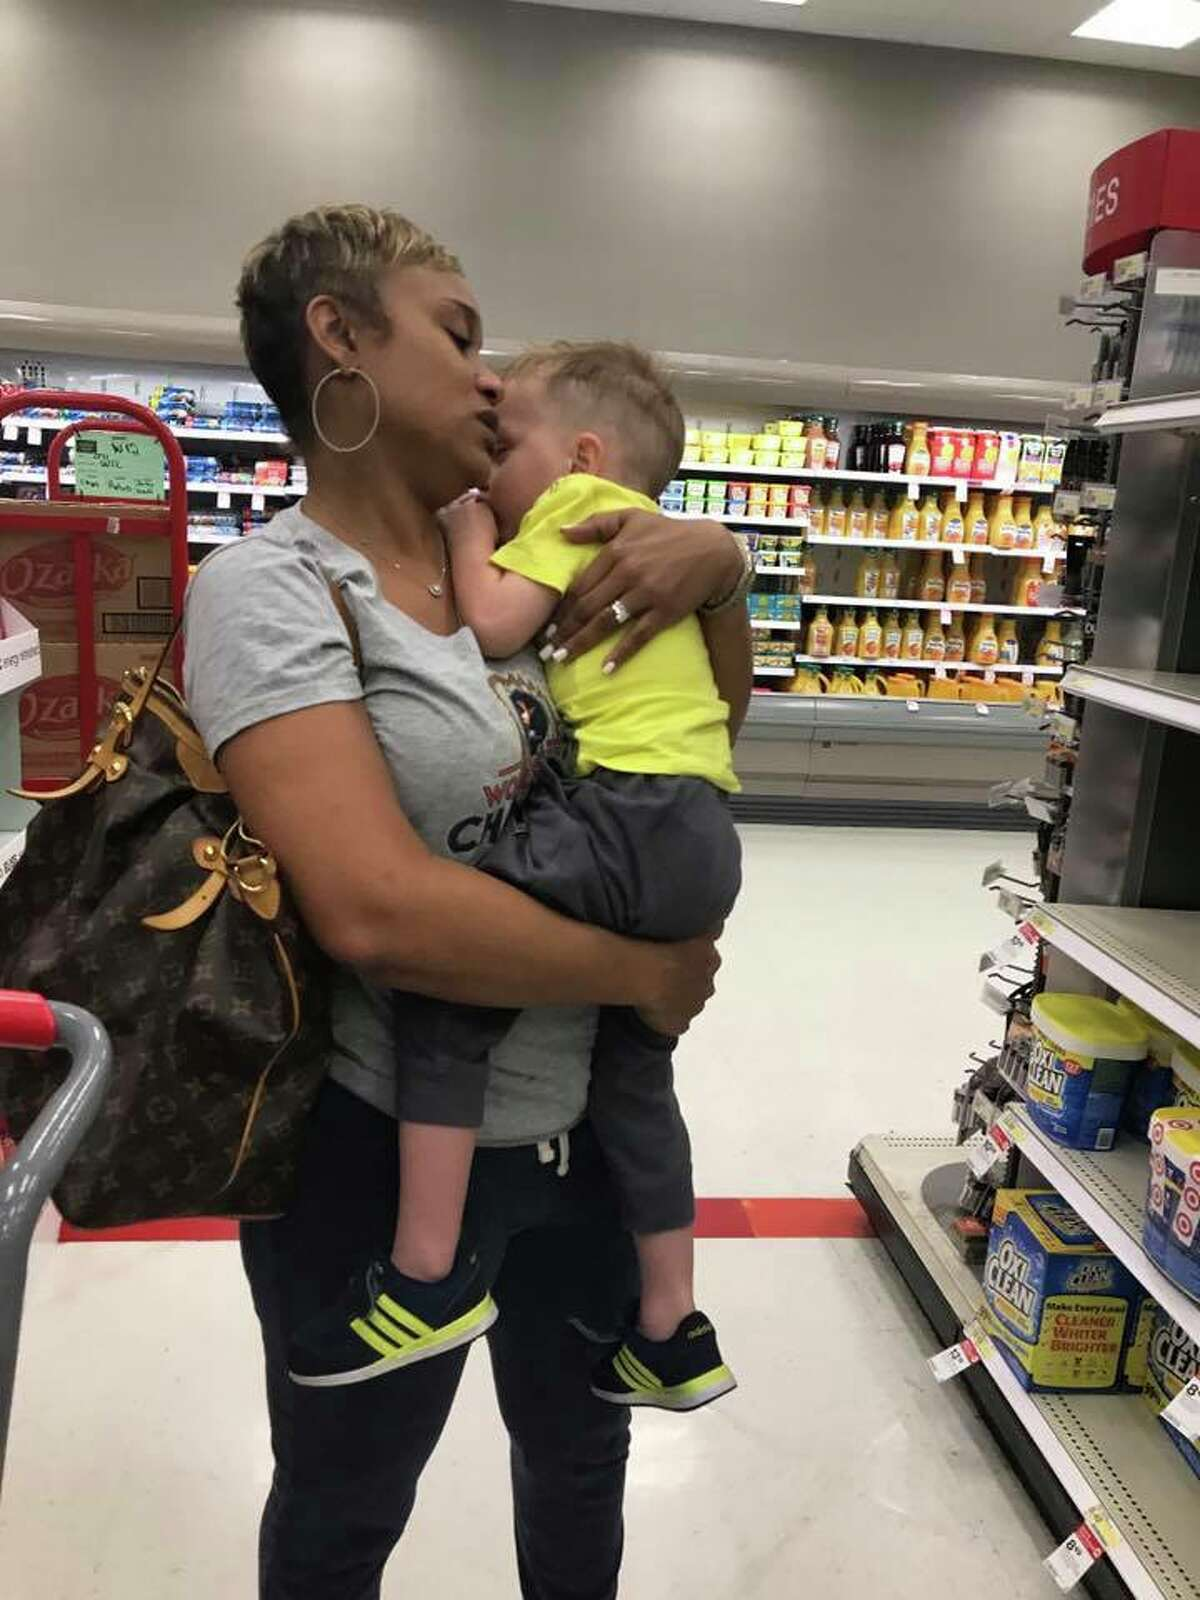 Pearland mom Rebecca Paterson posted a heartfelt message of thanks after another mom approached her to help with two crying children in Target.